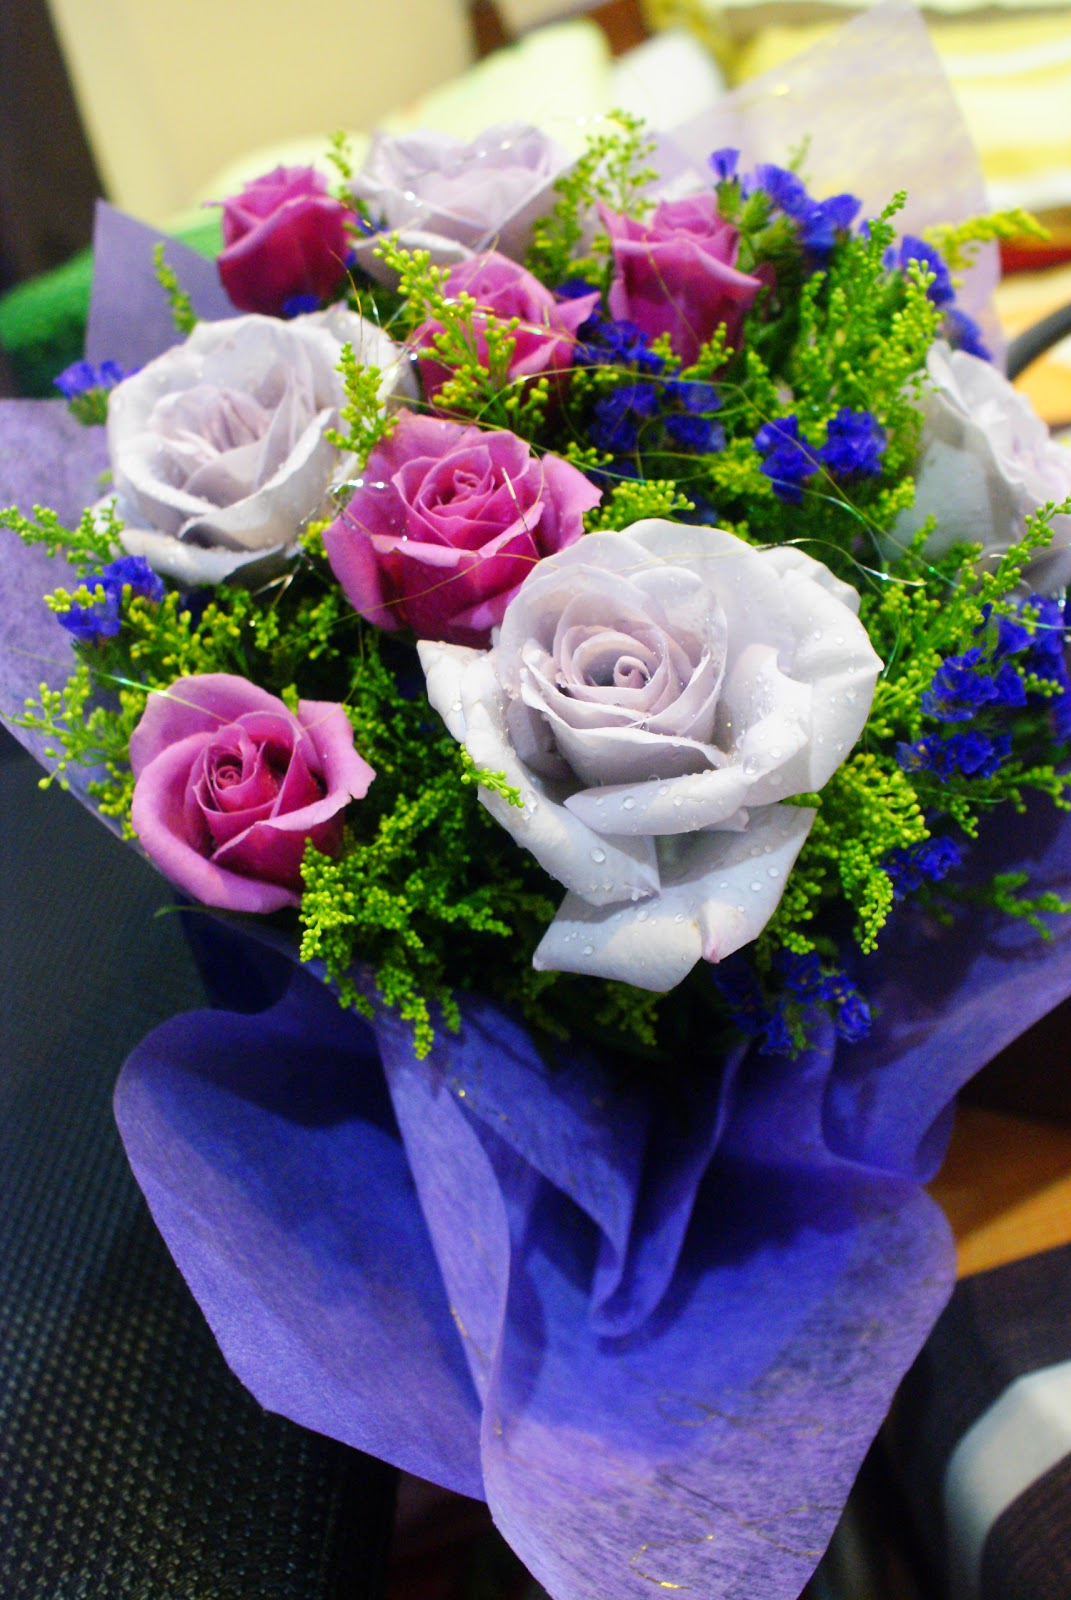 Flowers for my girl 4k pictures 4k pictures full hq wallpaper new baby flowers partyspot my girl what every man should know about giving flowers pink potted orchids flowers for my pretty baby girl heart of my heart izmirmasajfo